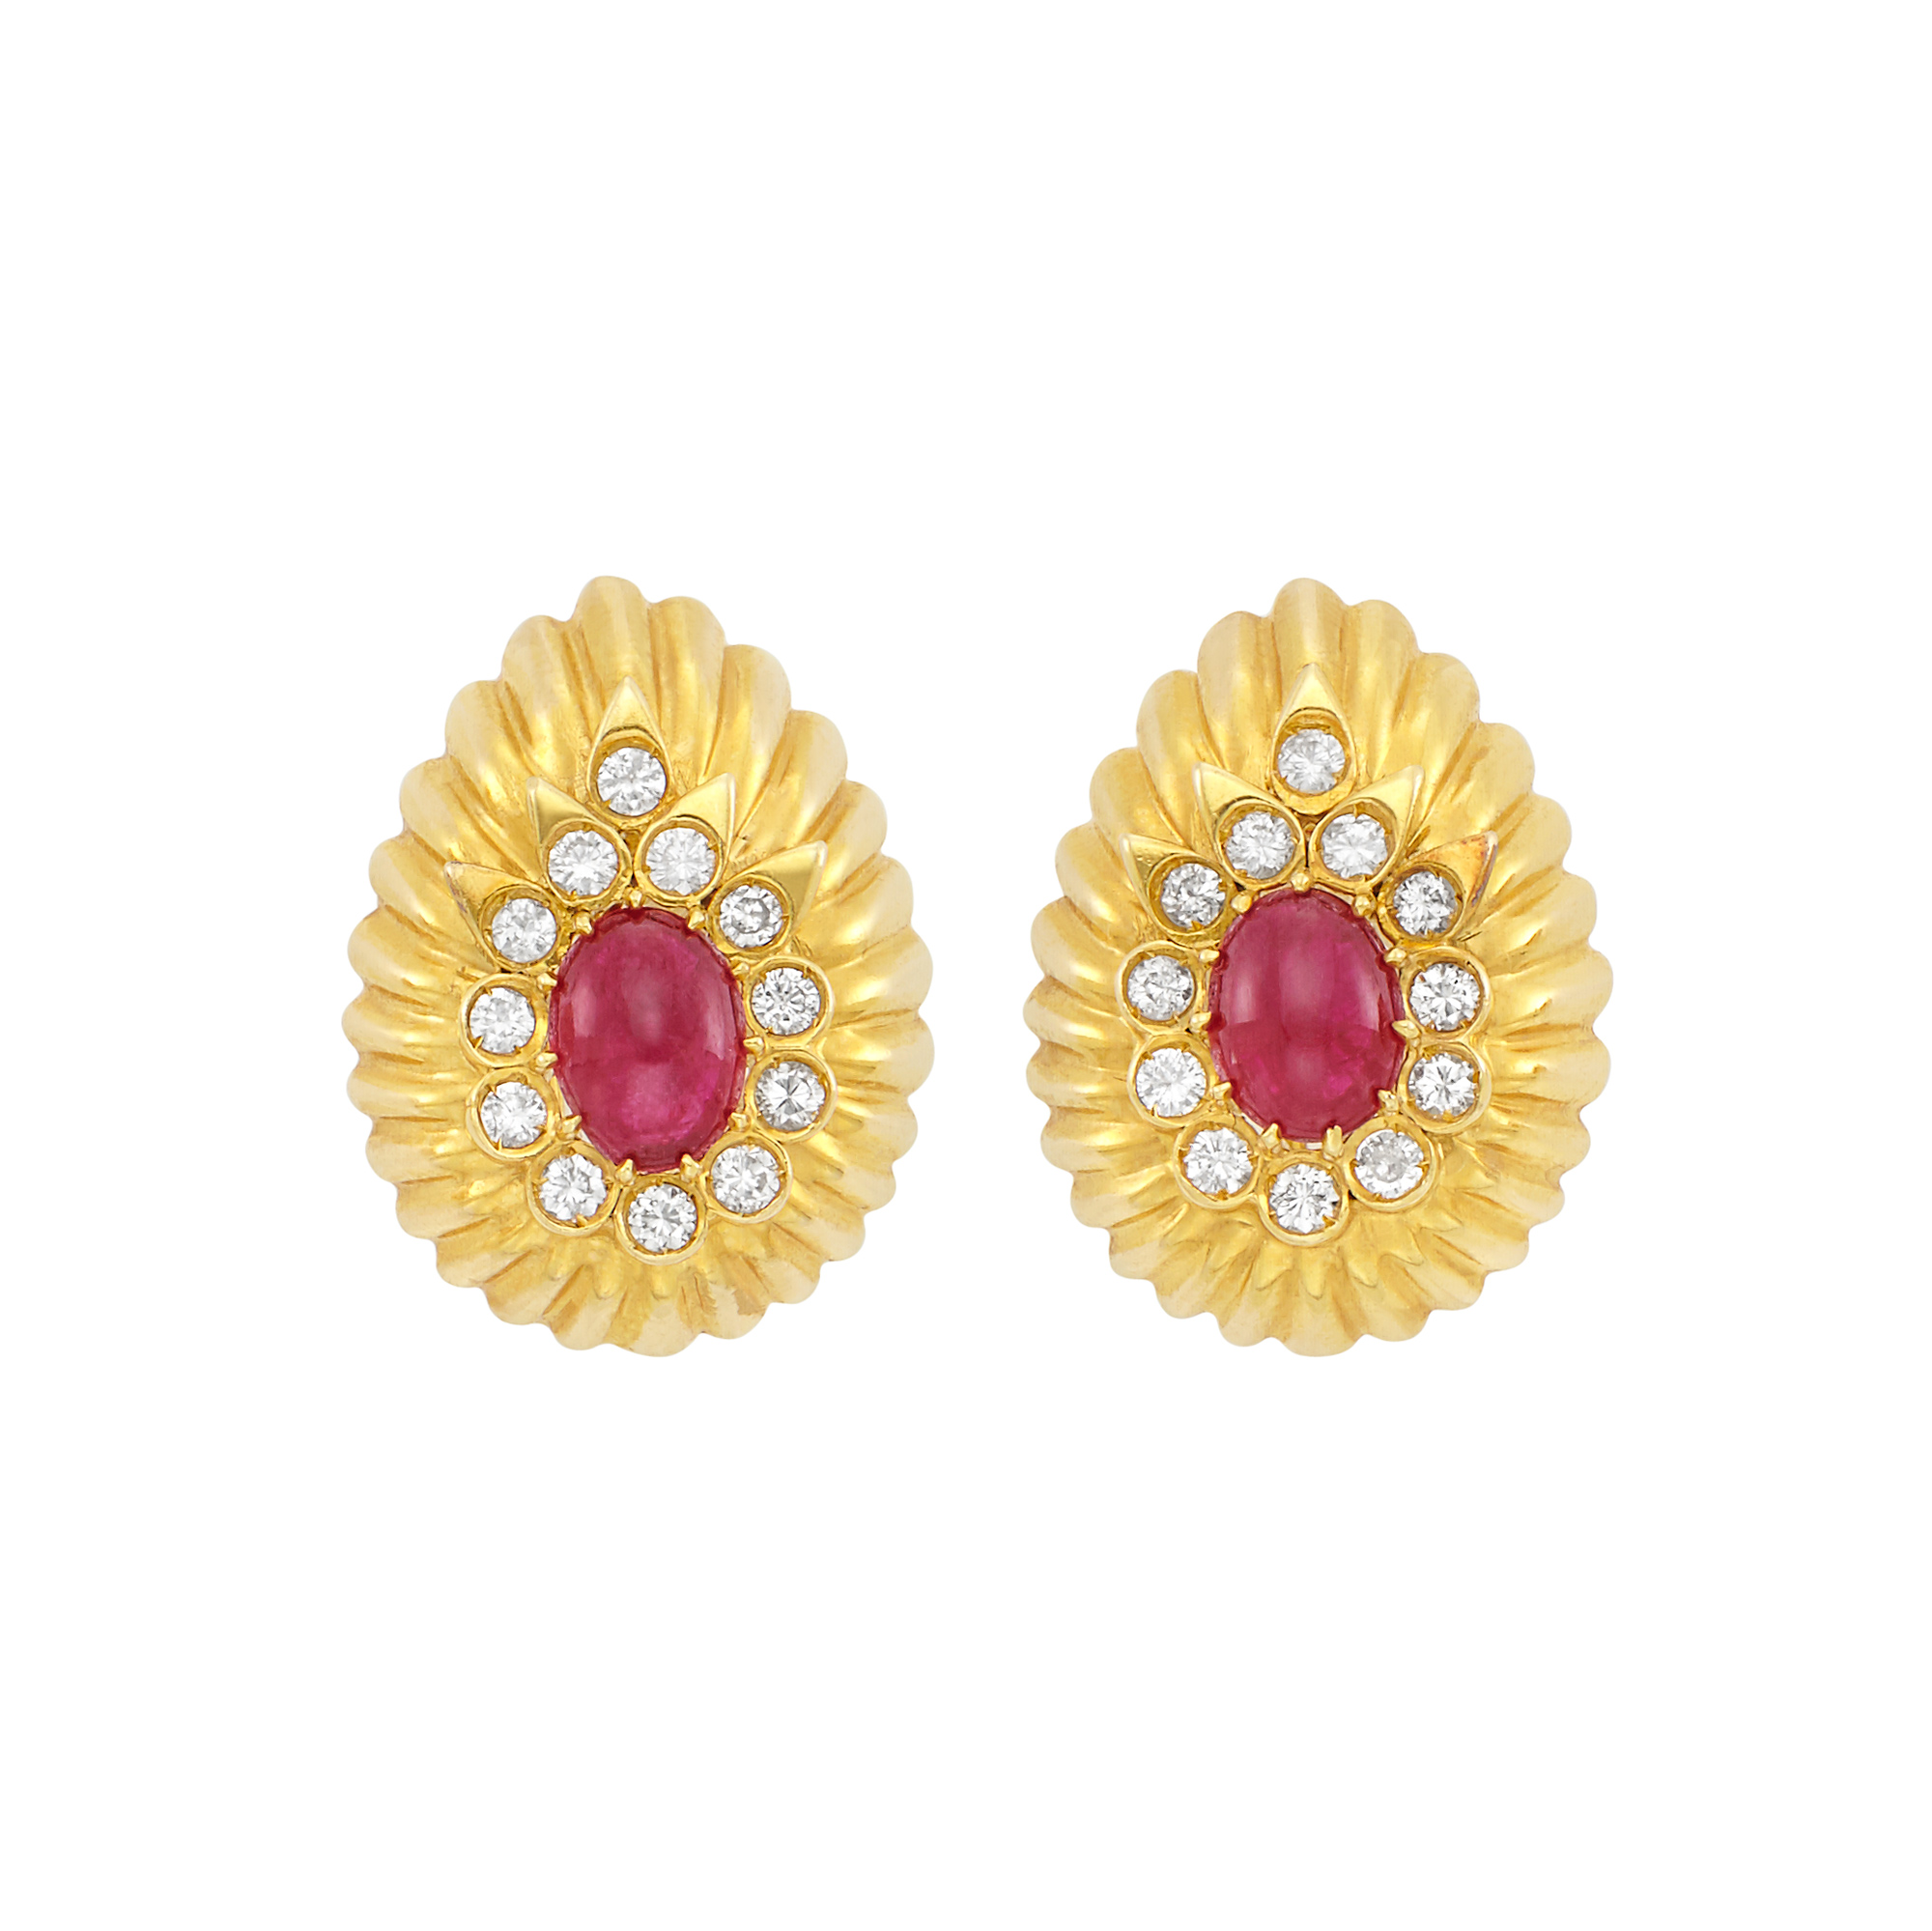 Lot image - Pair of Gold, Cabochon Ruby and Diamond Earrings